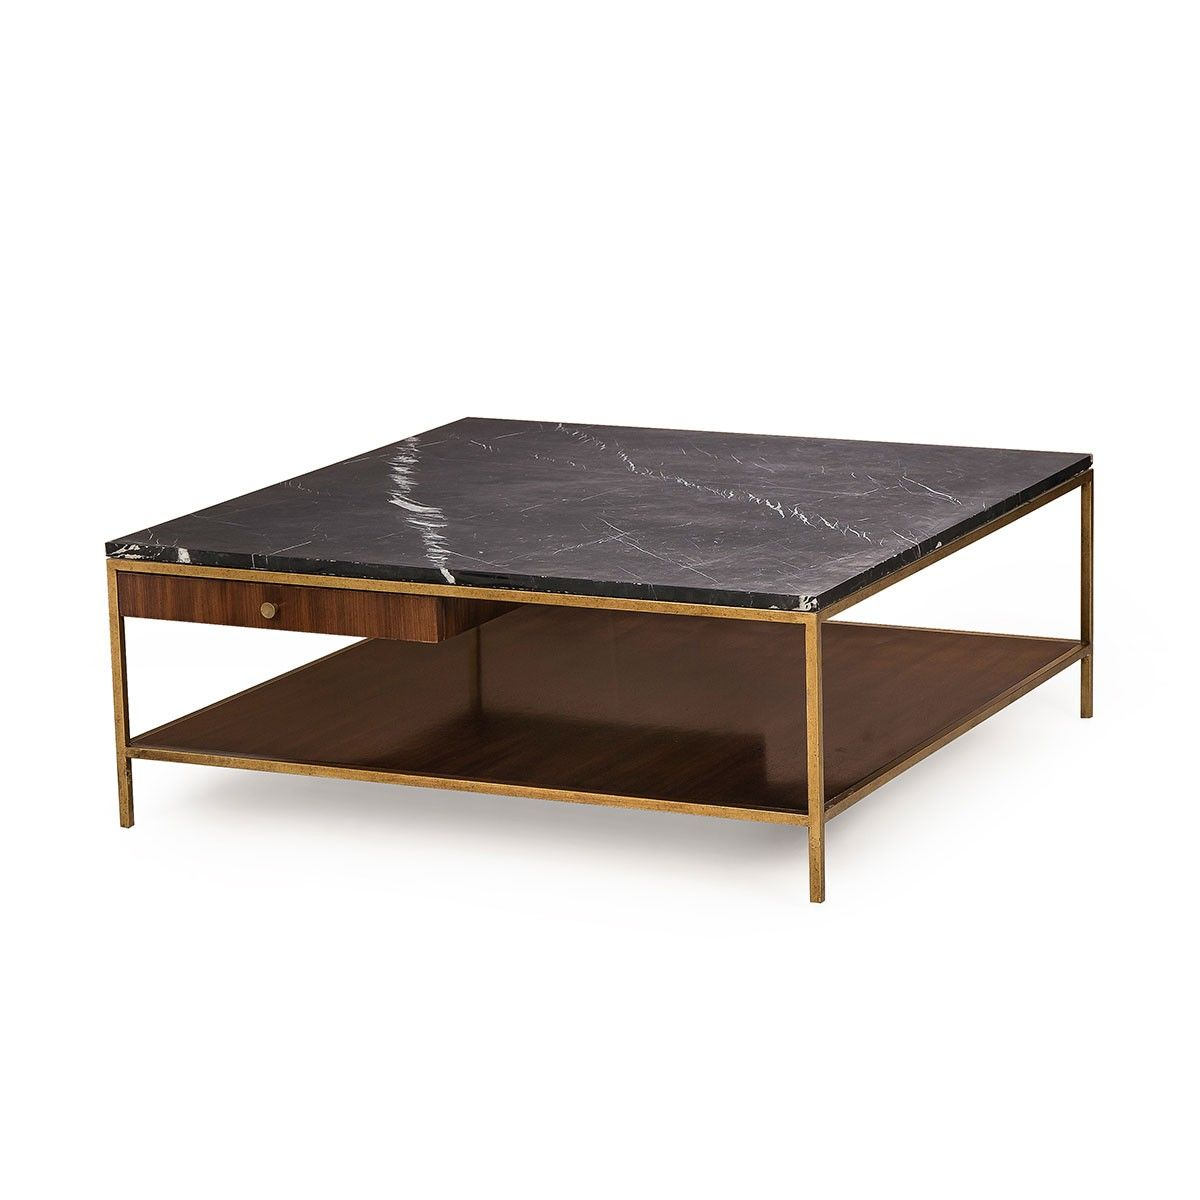 Andrew Martin Rufus Coffee Table Online With Houseology S Price Promise Full Collection Uk International Shipping